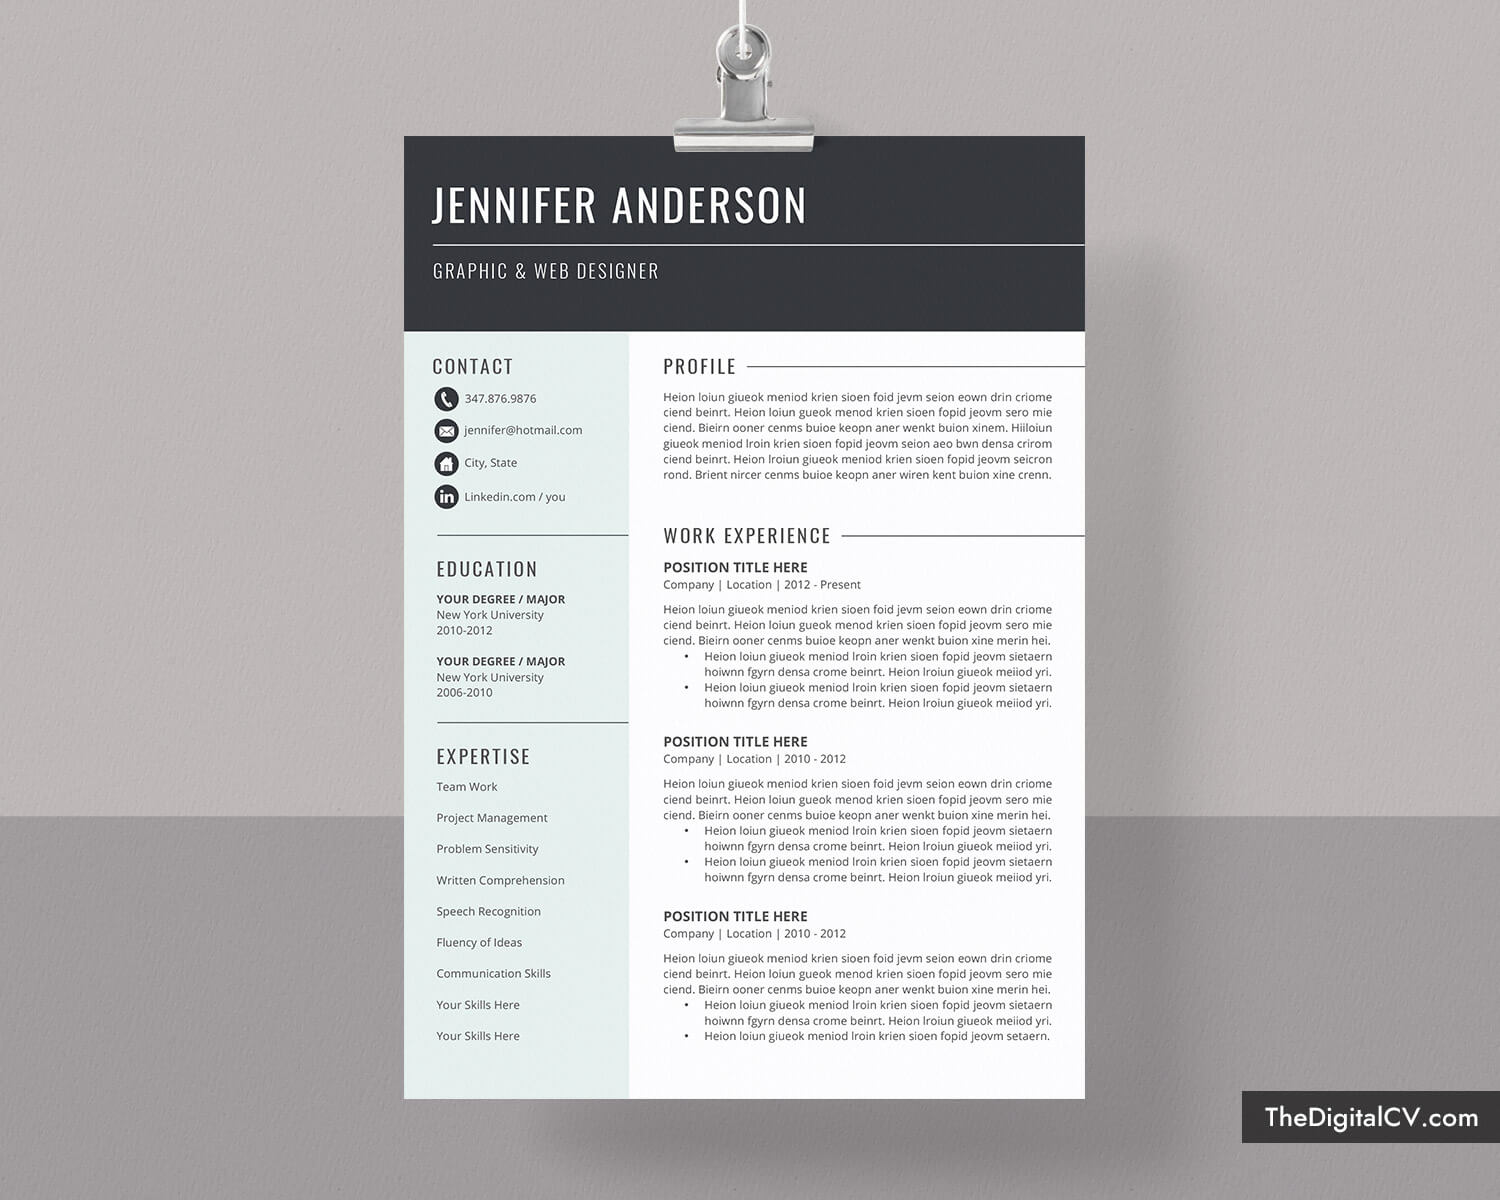 Basic And Simple Resume Template 2020 2021, Cv Template, Cover Letter,  Microsoft Word Resume Template, 1 3 Page, Modern Resume, Creative Resume, With Microsoft Word Resumes Templates